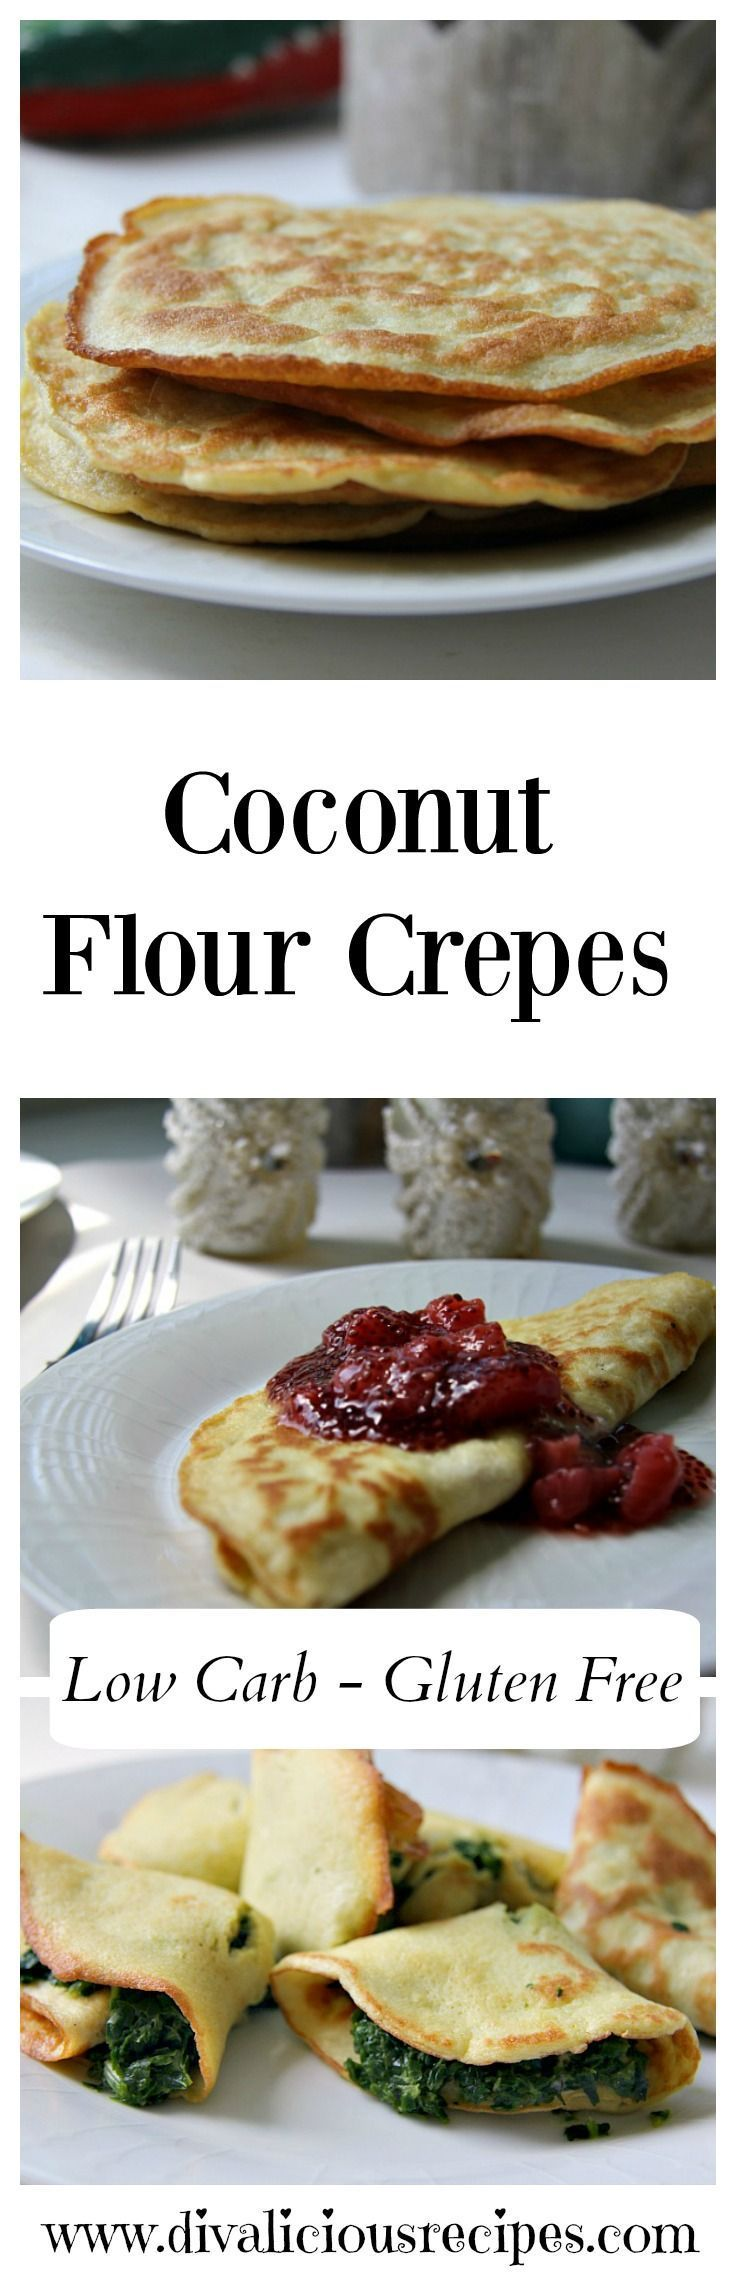 Coconut flour crepes that make a great quick supper or dessert dish. They can be filled or eaten simply with a dash of lemon over them. Recipe - http://divaliciousrecipes.com/2017/05/03/coconut-flour-crepes/